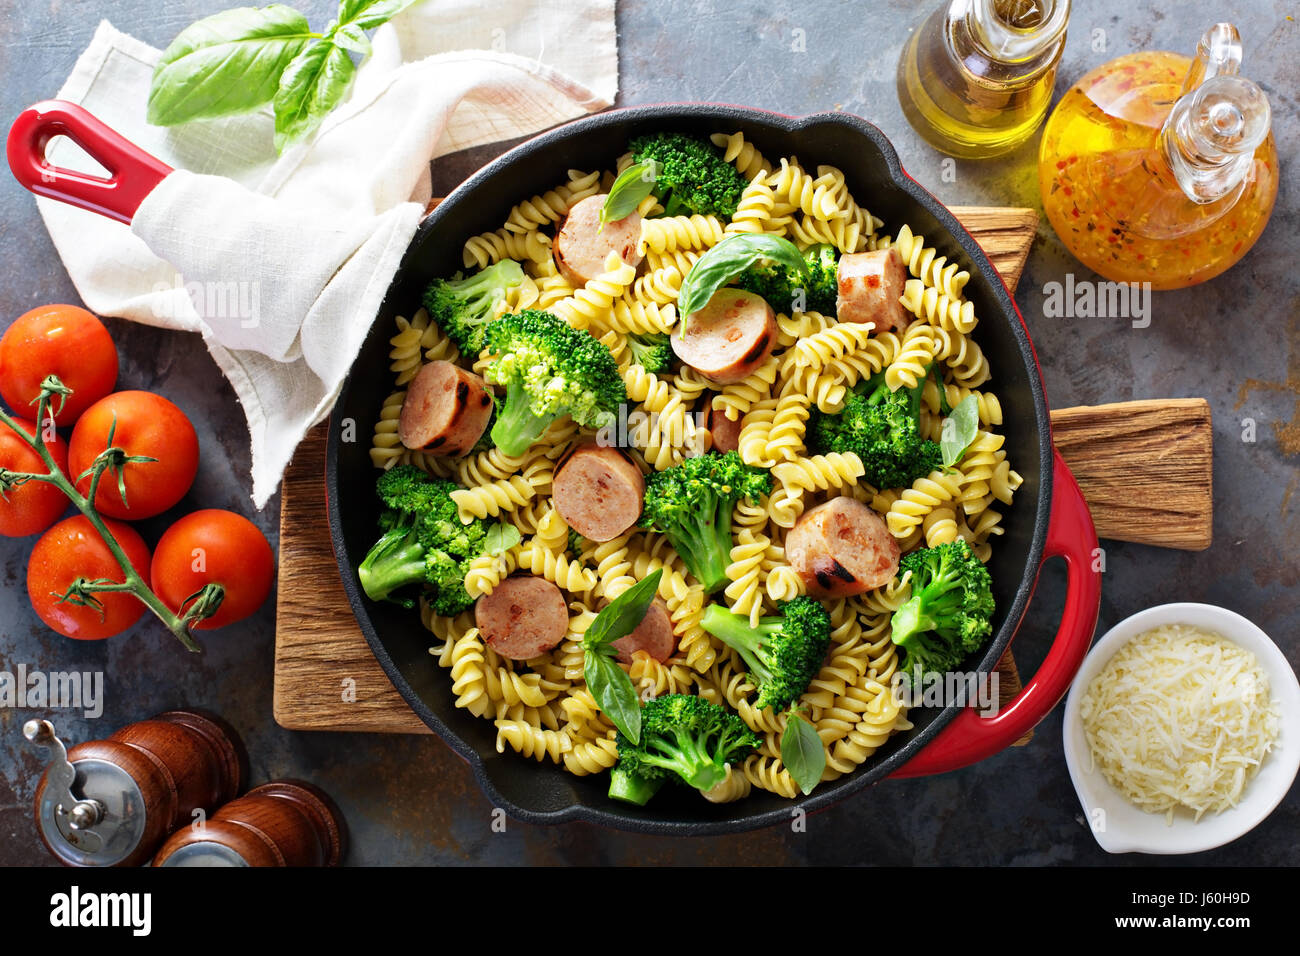 Pasta bake with sausage and broccoli - Stock Image